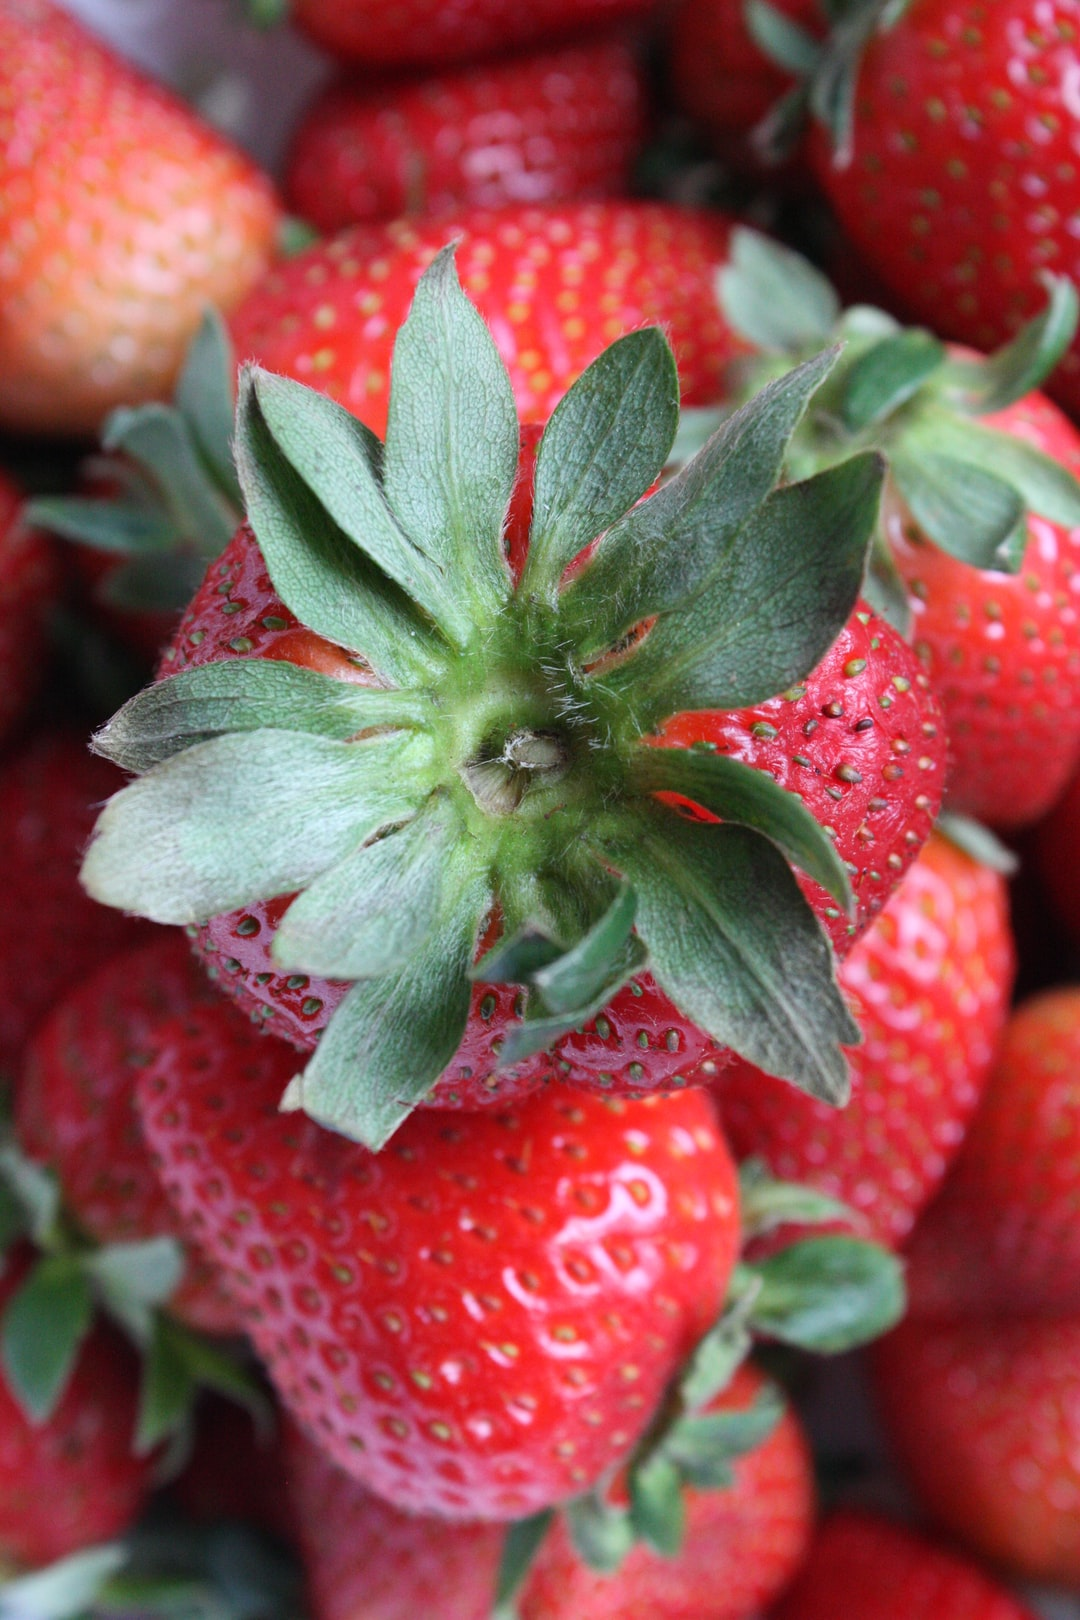 Organic strawberry in a basket from the market